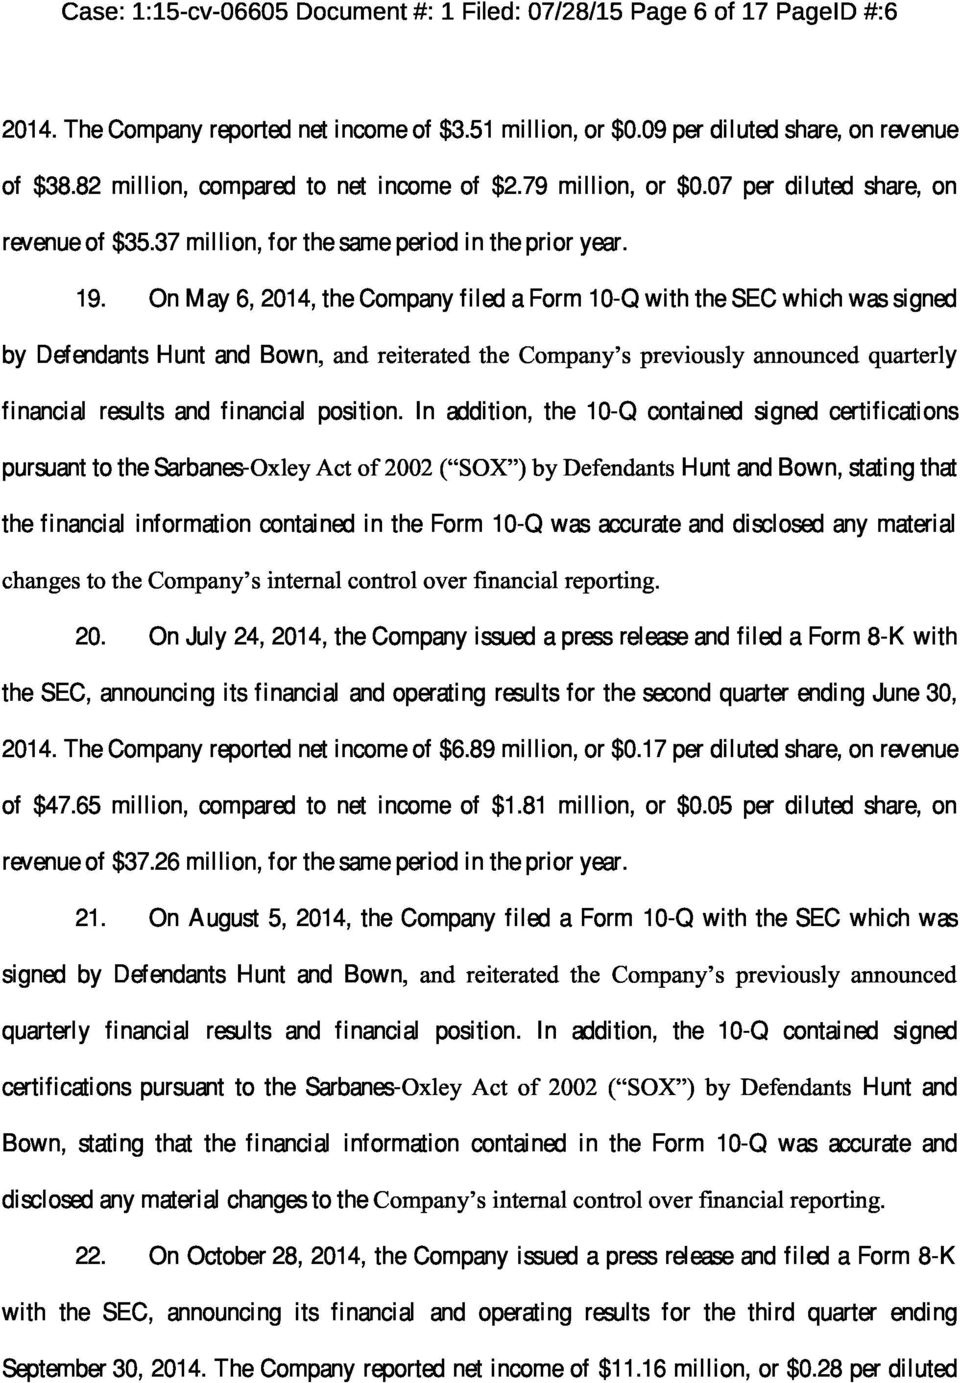 On May 6, 2014, the Company filed a Form 10-Q with the SEC which was signed by Defendants Hunt and Bown, and reiterated the Company s previously announced quarterly financial results and financial